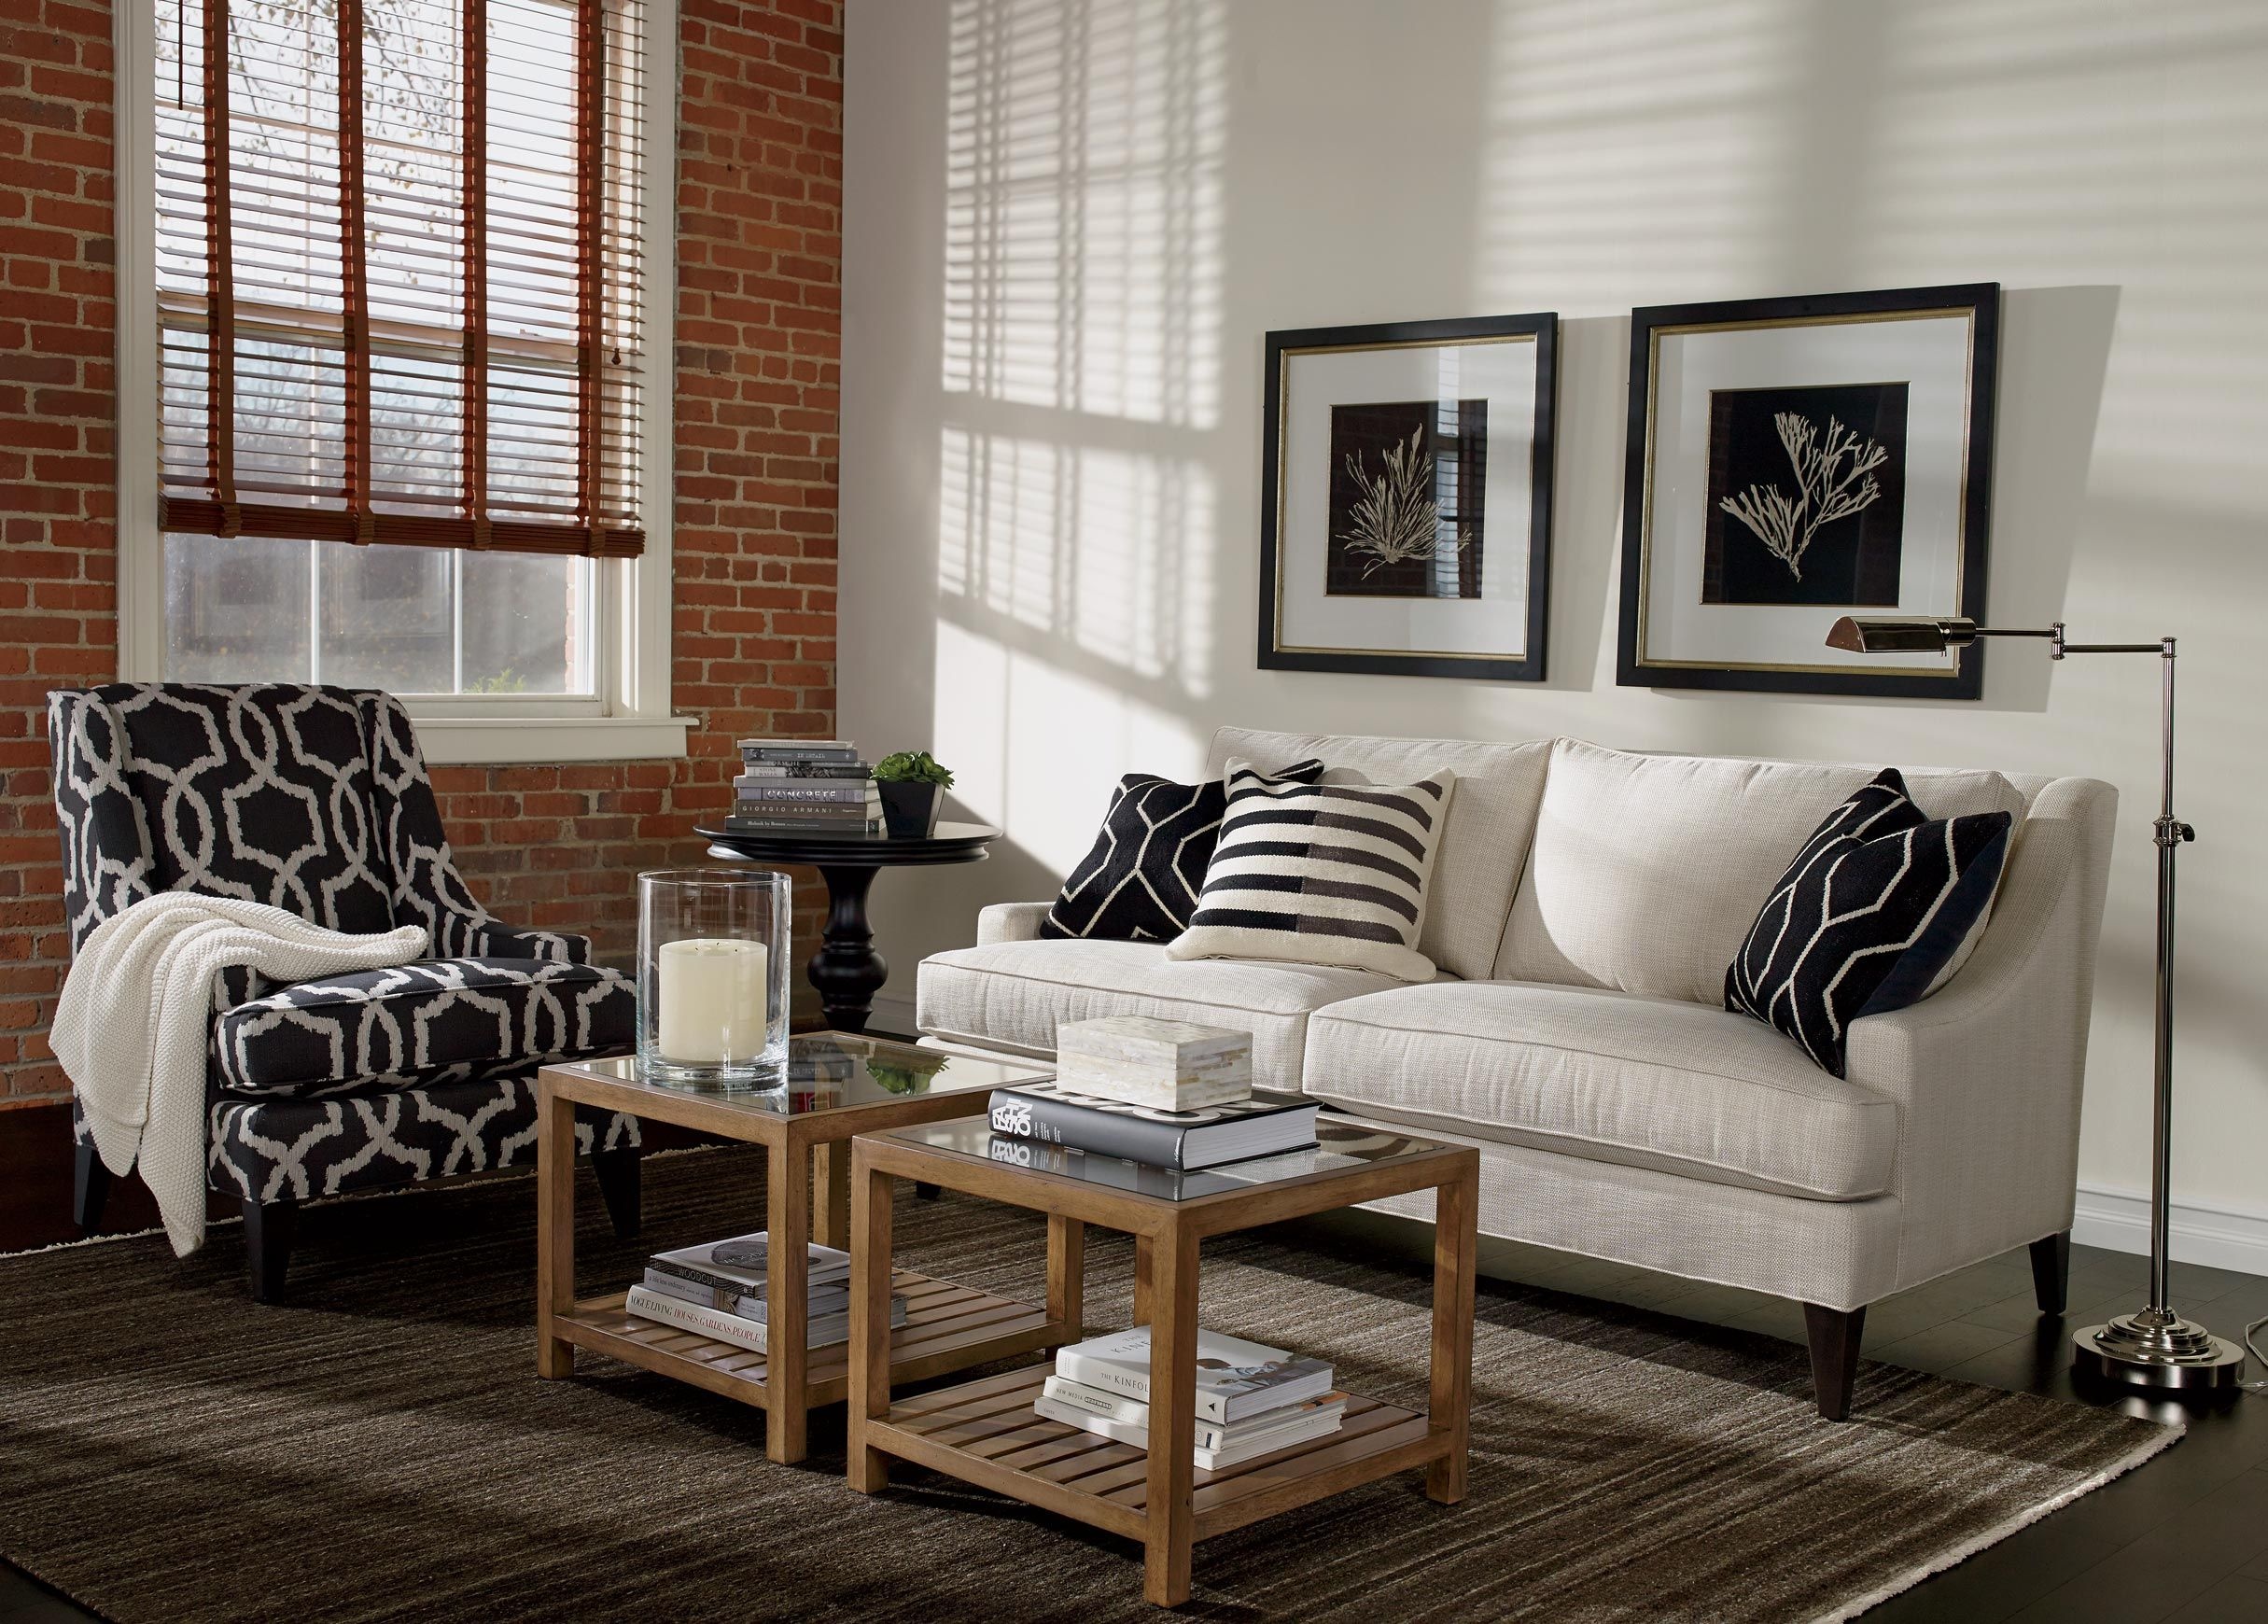 keep it casual living room ethan allen modern casual on modern living room inspiration id=12015